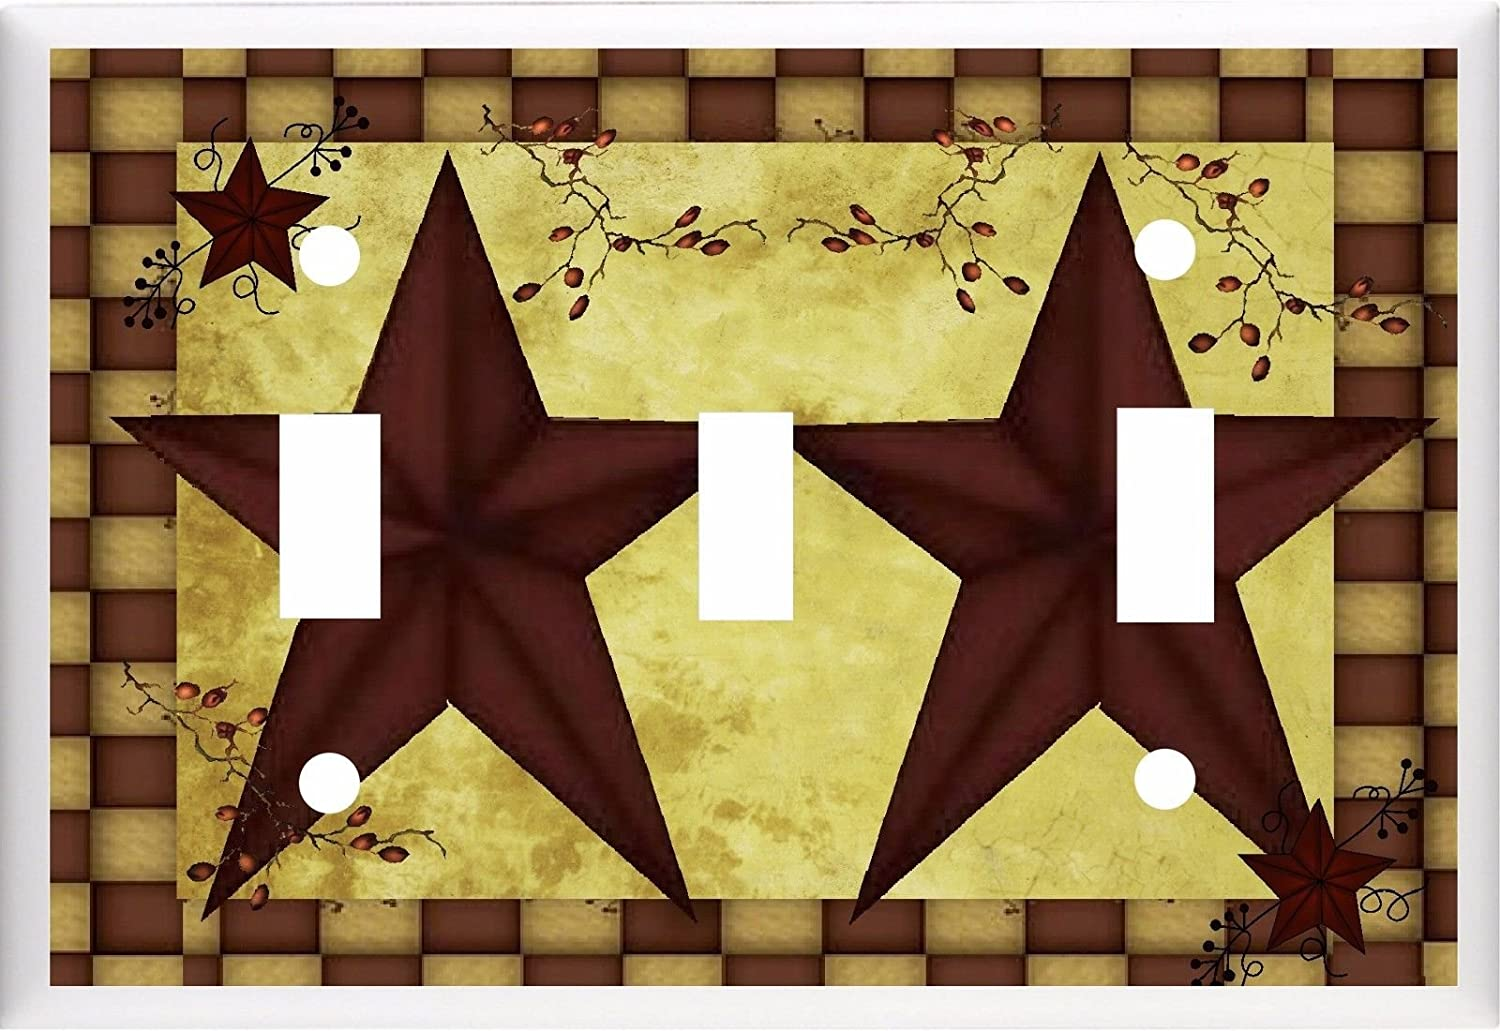 Amazon.com: BARN STAR PRIMITIVE COUNTRY INSPIRED LIGHT SWITCH COVER ...